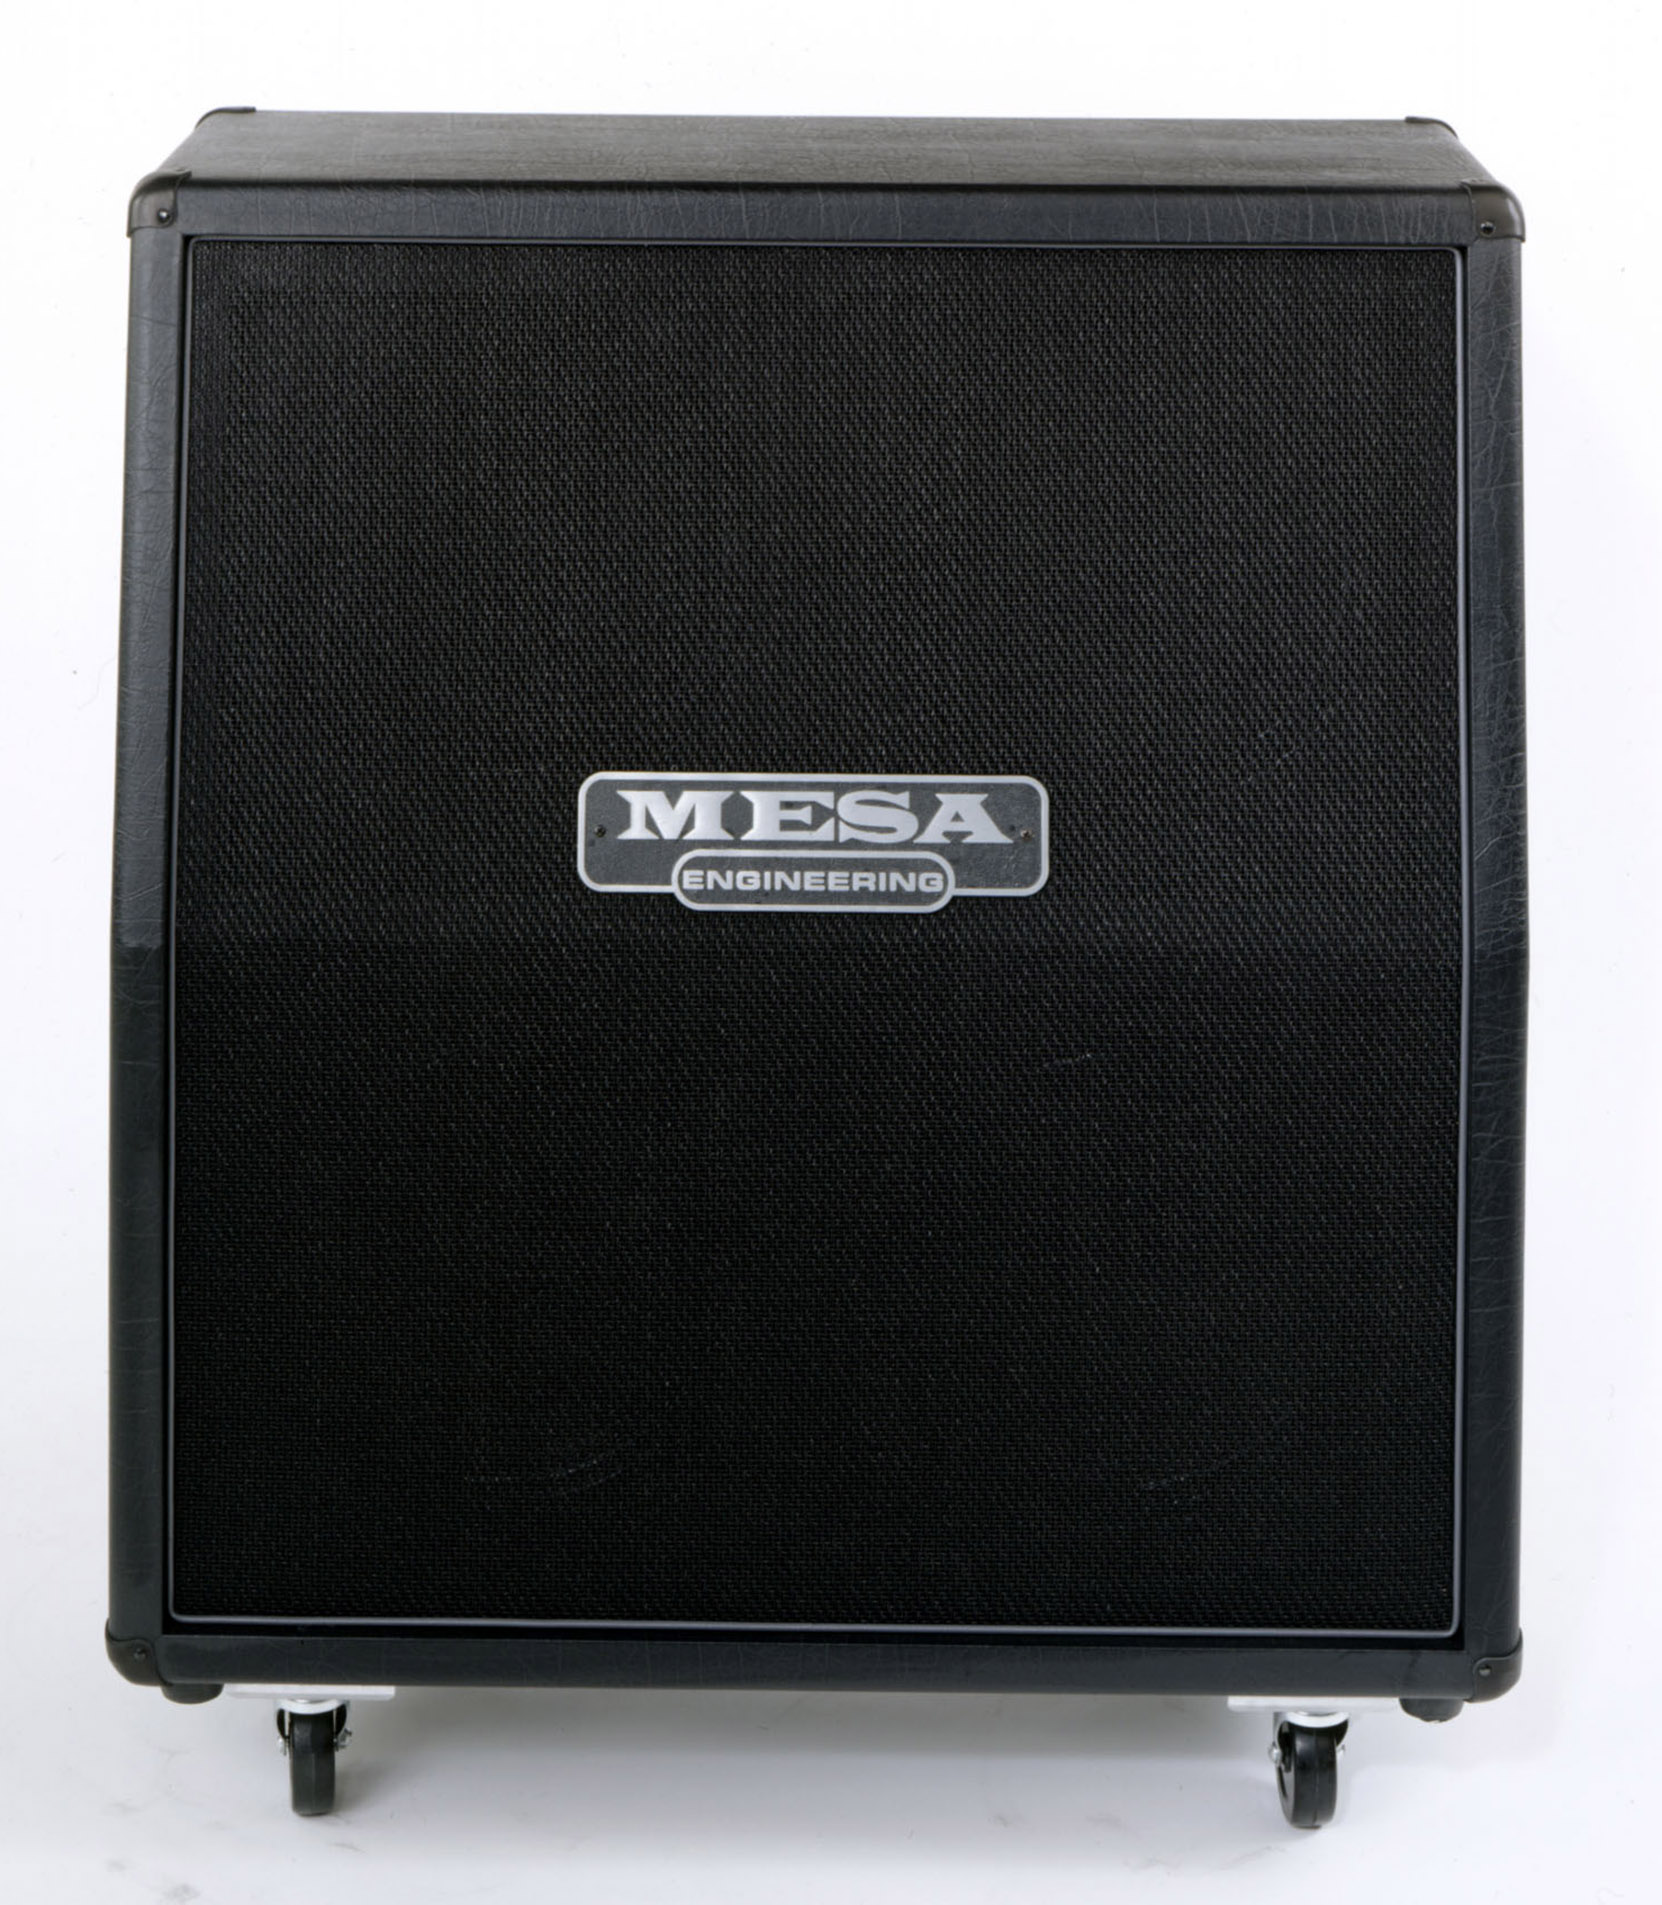 Buy Mesaboogie - Road King 300Watt Rectifier Slant Cabinet